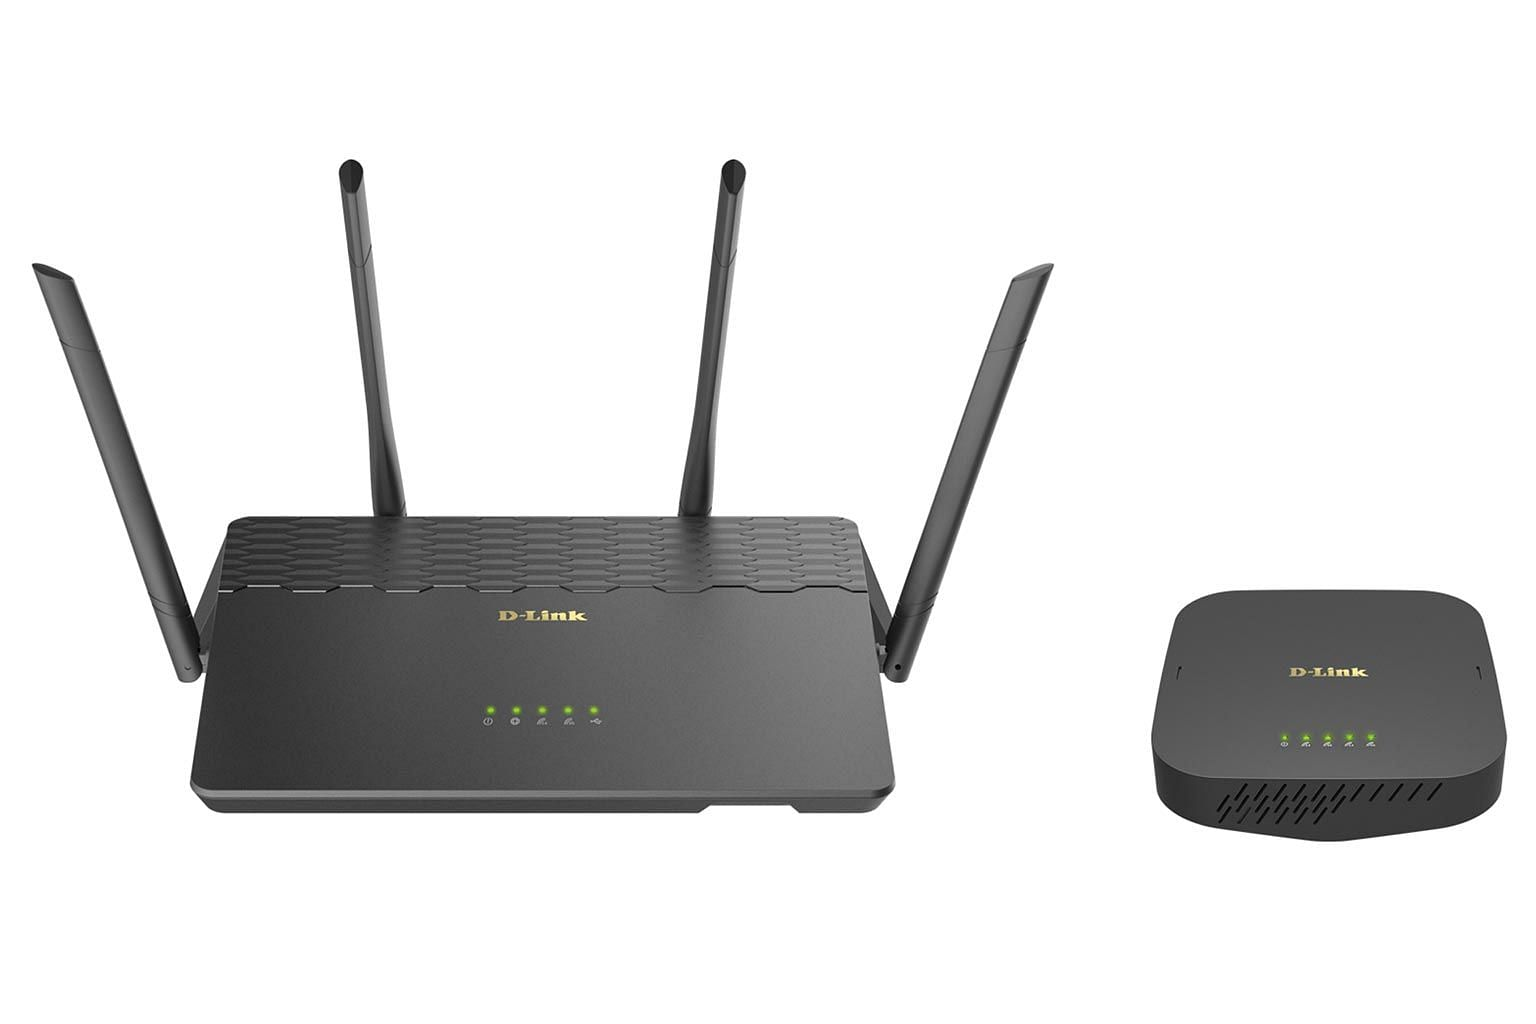 The D-Link Covr, when it is launched next month at $369, will be the most affordable Wi-Fi system in the market.